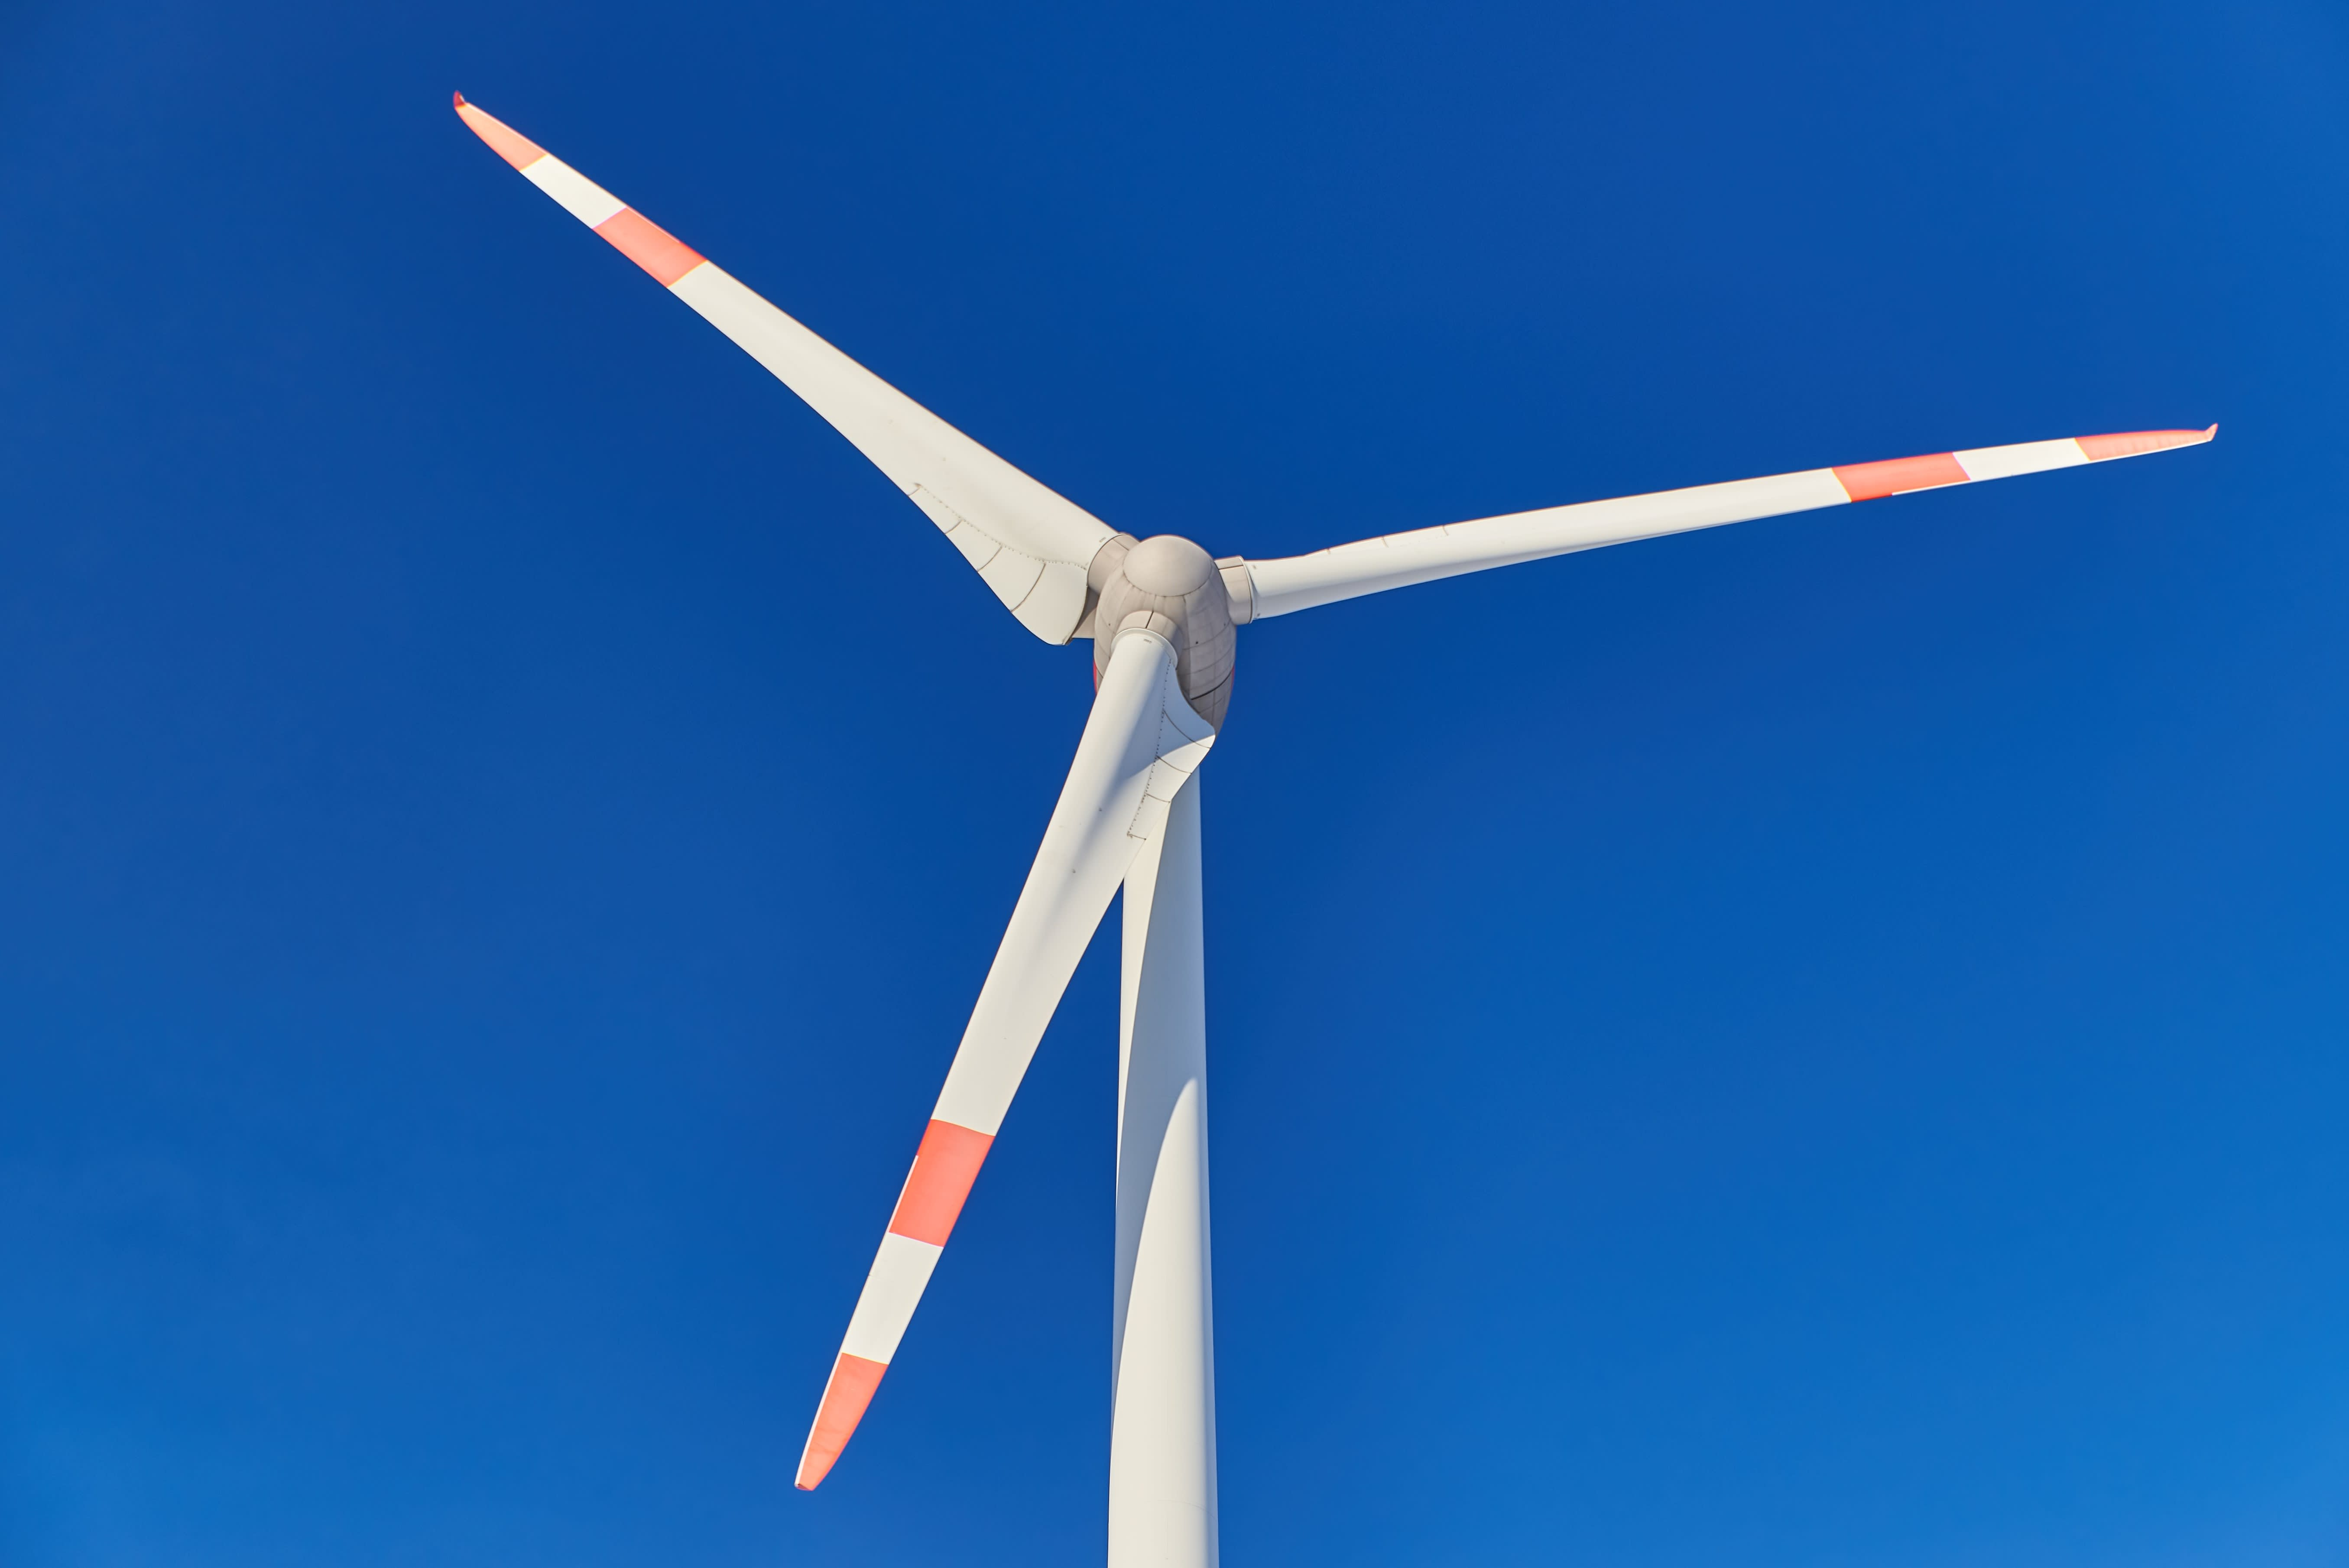 Danish energy giant Orsted is pivoting to onshore wind in new $684 million deal